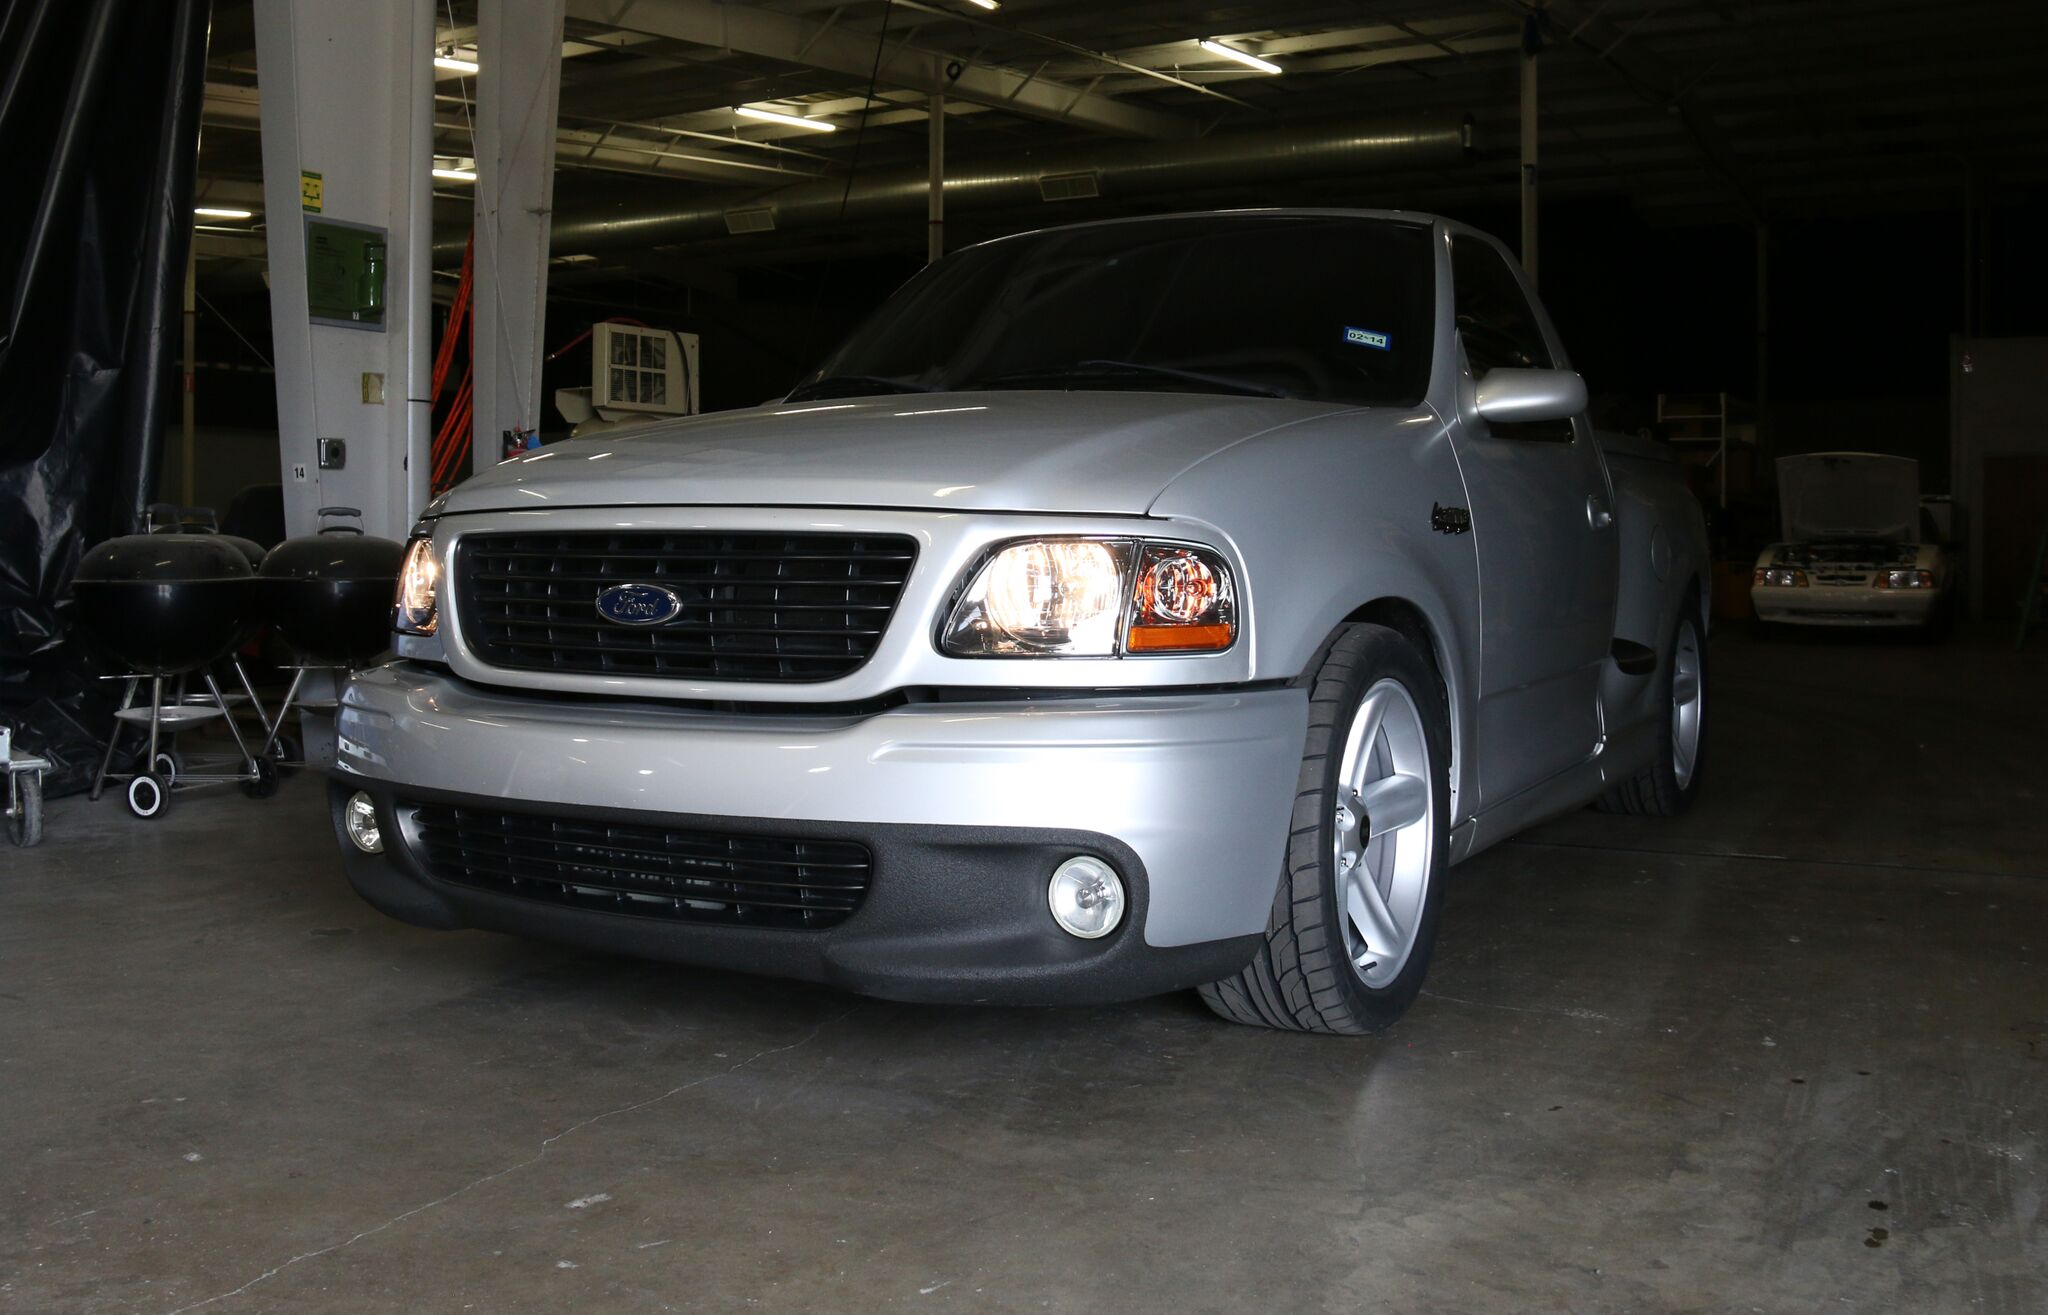 Top 13 Ford Lightning Parts - Top 13 Ford Lightning Parts